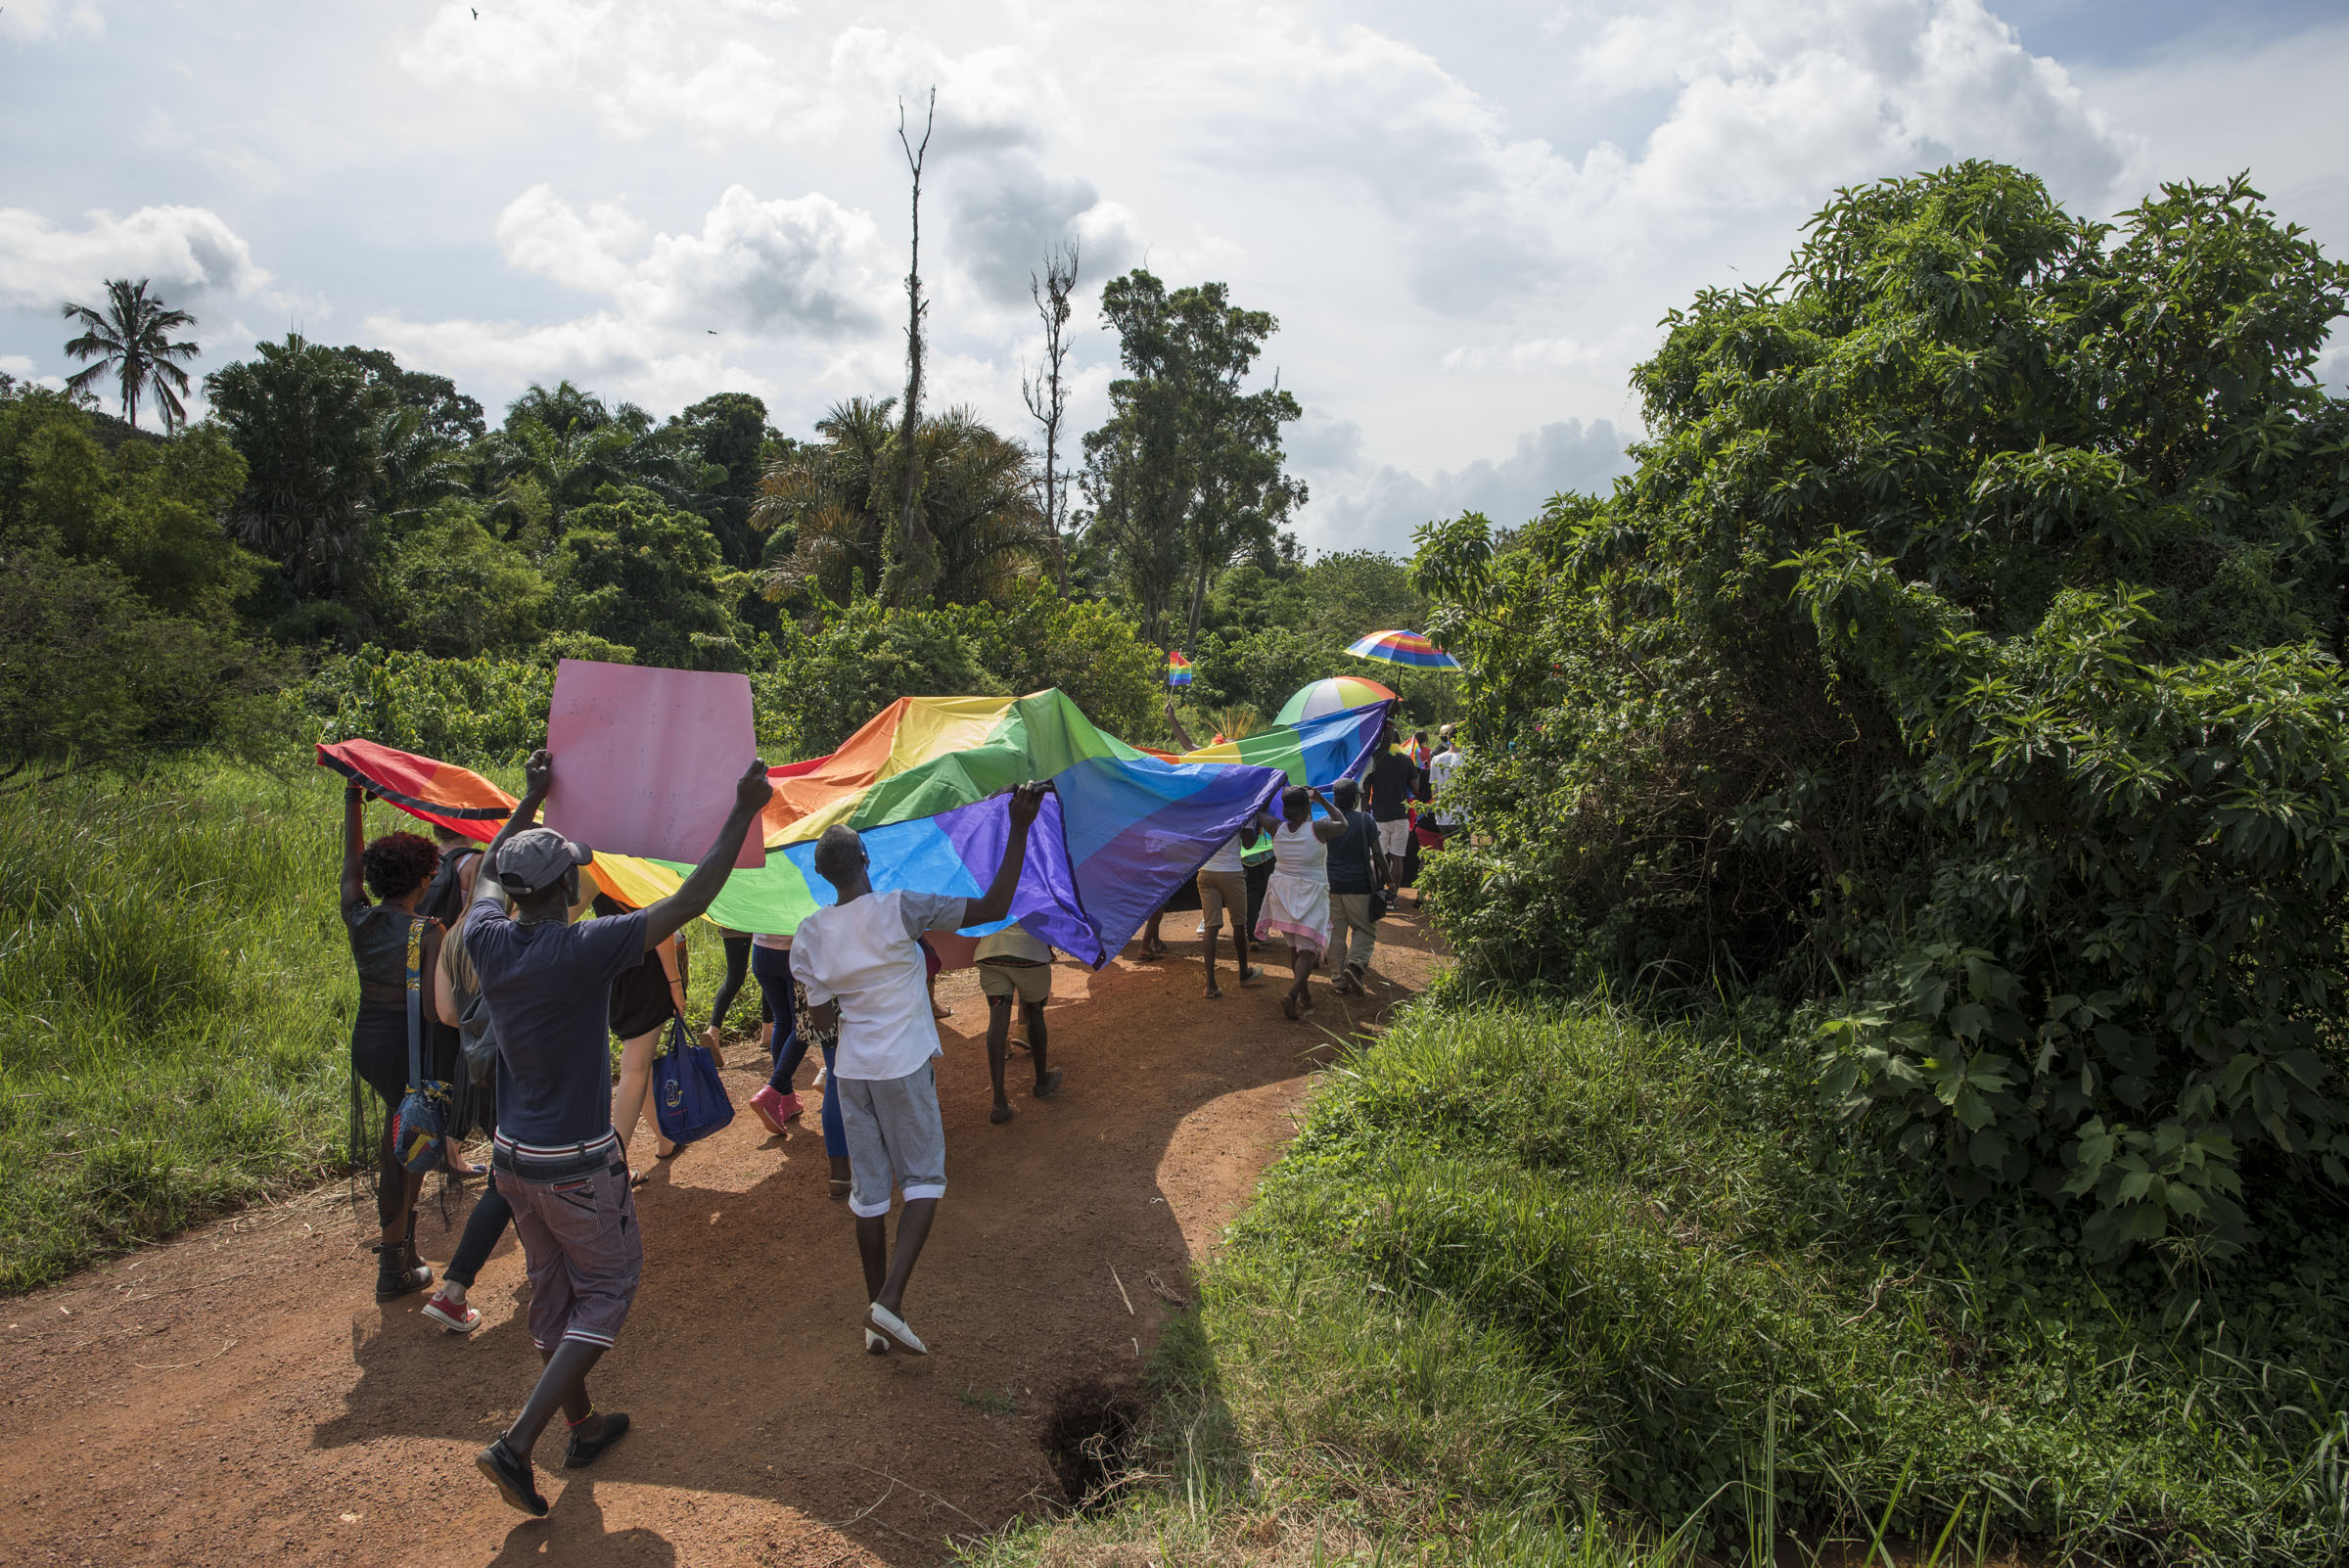 Members of the LGBT community and their supporters participate in a Pride march in a park on the banks of Lake Victoria in Entebbe, 40 km from Kampala. Safety concerns made it impossible to hold the march in a public location like downtown Kampala. (Photo by Diana Zeyneb Alhindawi/GroundTruth)